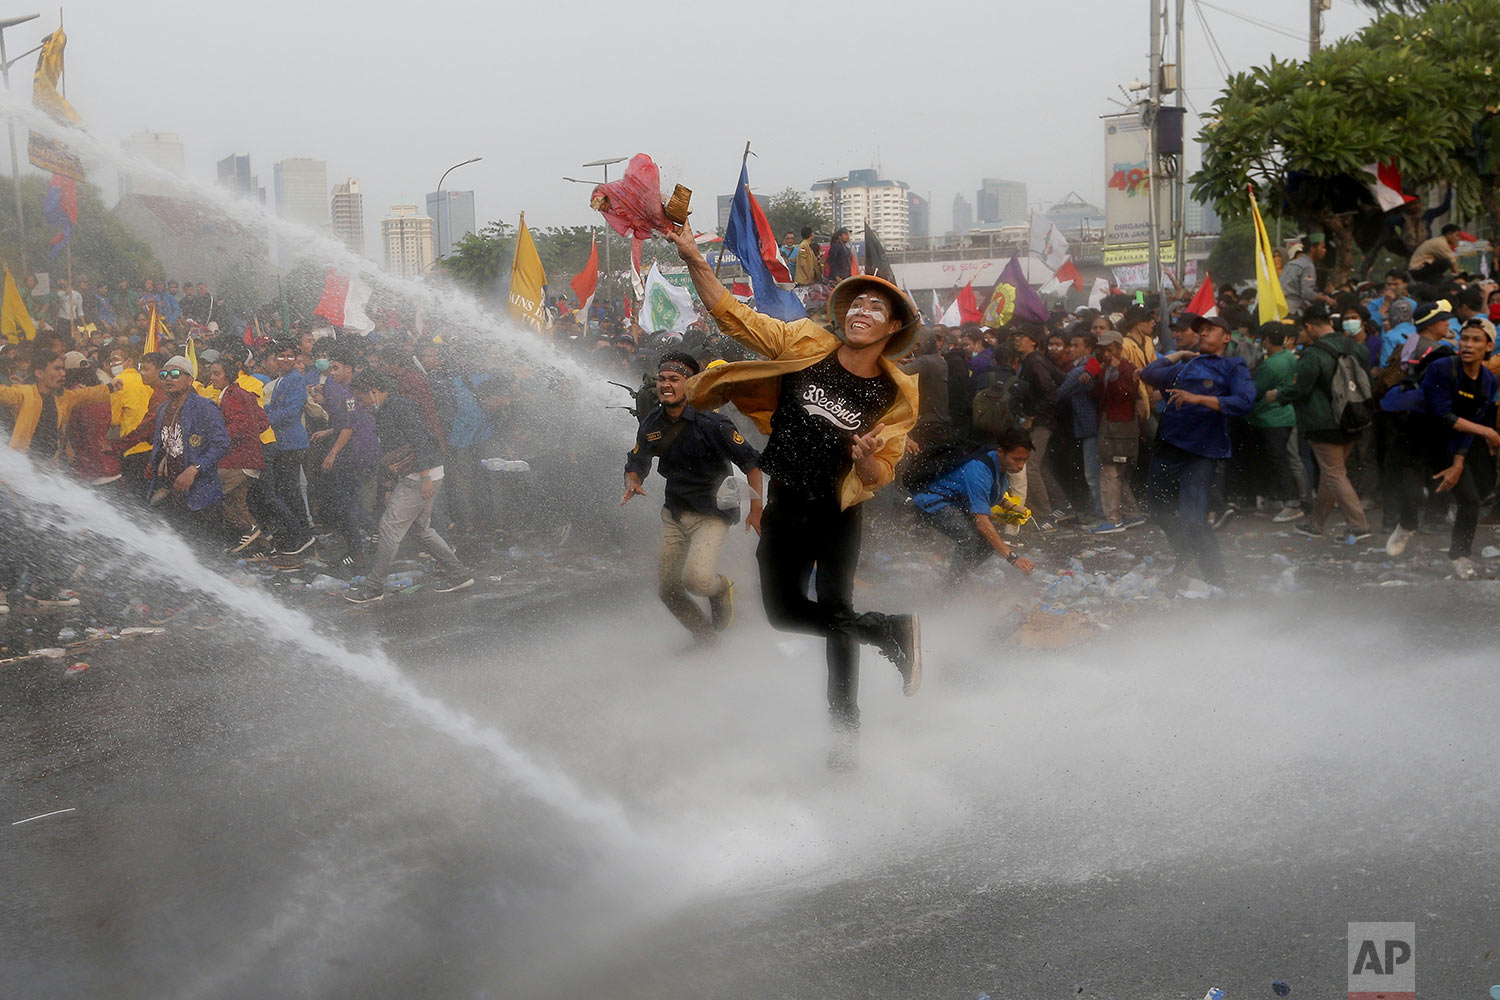 Student protesters hurl objects as they are sprayed by a police water cannon truck during a protest outside the parliament in Jakarta, Indonesia, Tuesday, Sept. 24, 2019.  (AP Photo/Tatan Syuflana)